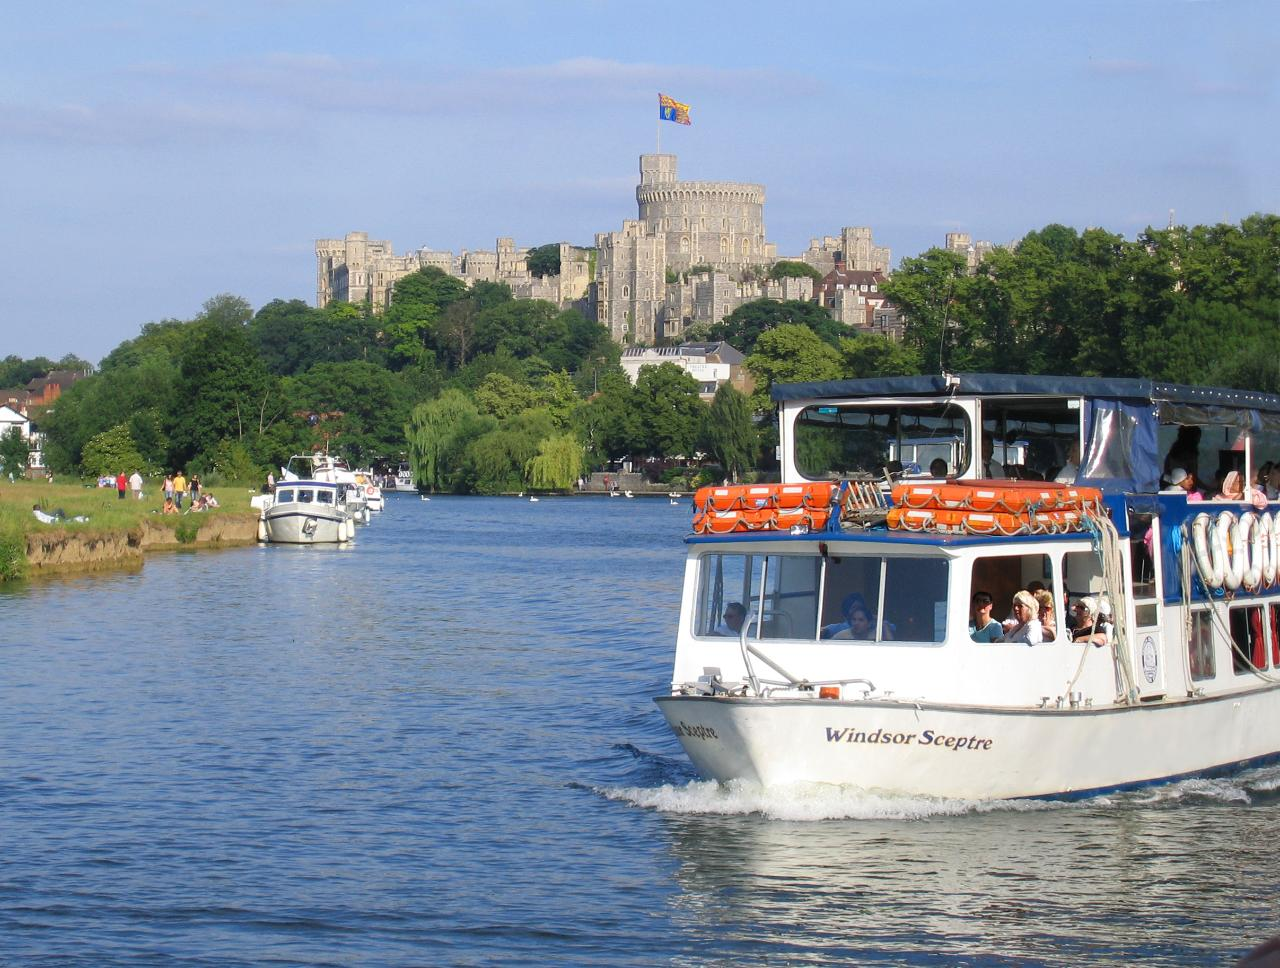 Windsor River Cruise with delicious Ploughman's lunch OR Windsor Only - Wed 26th June 2019